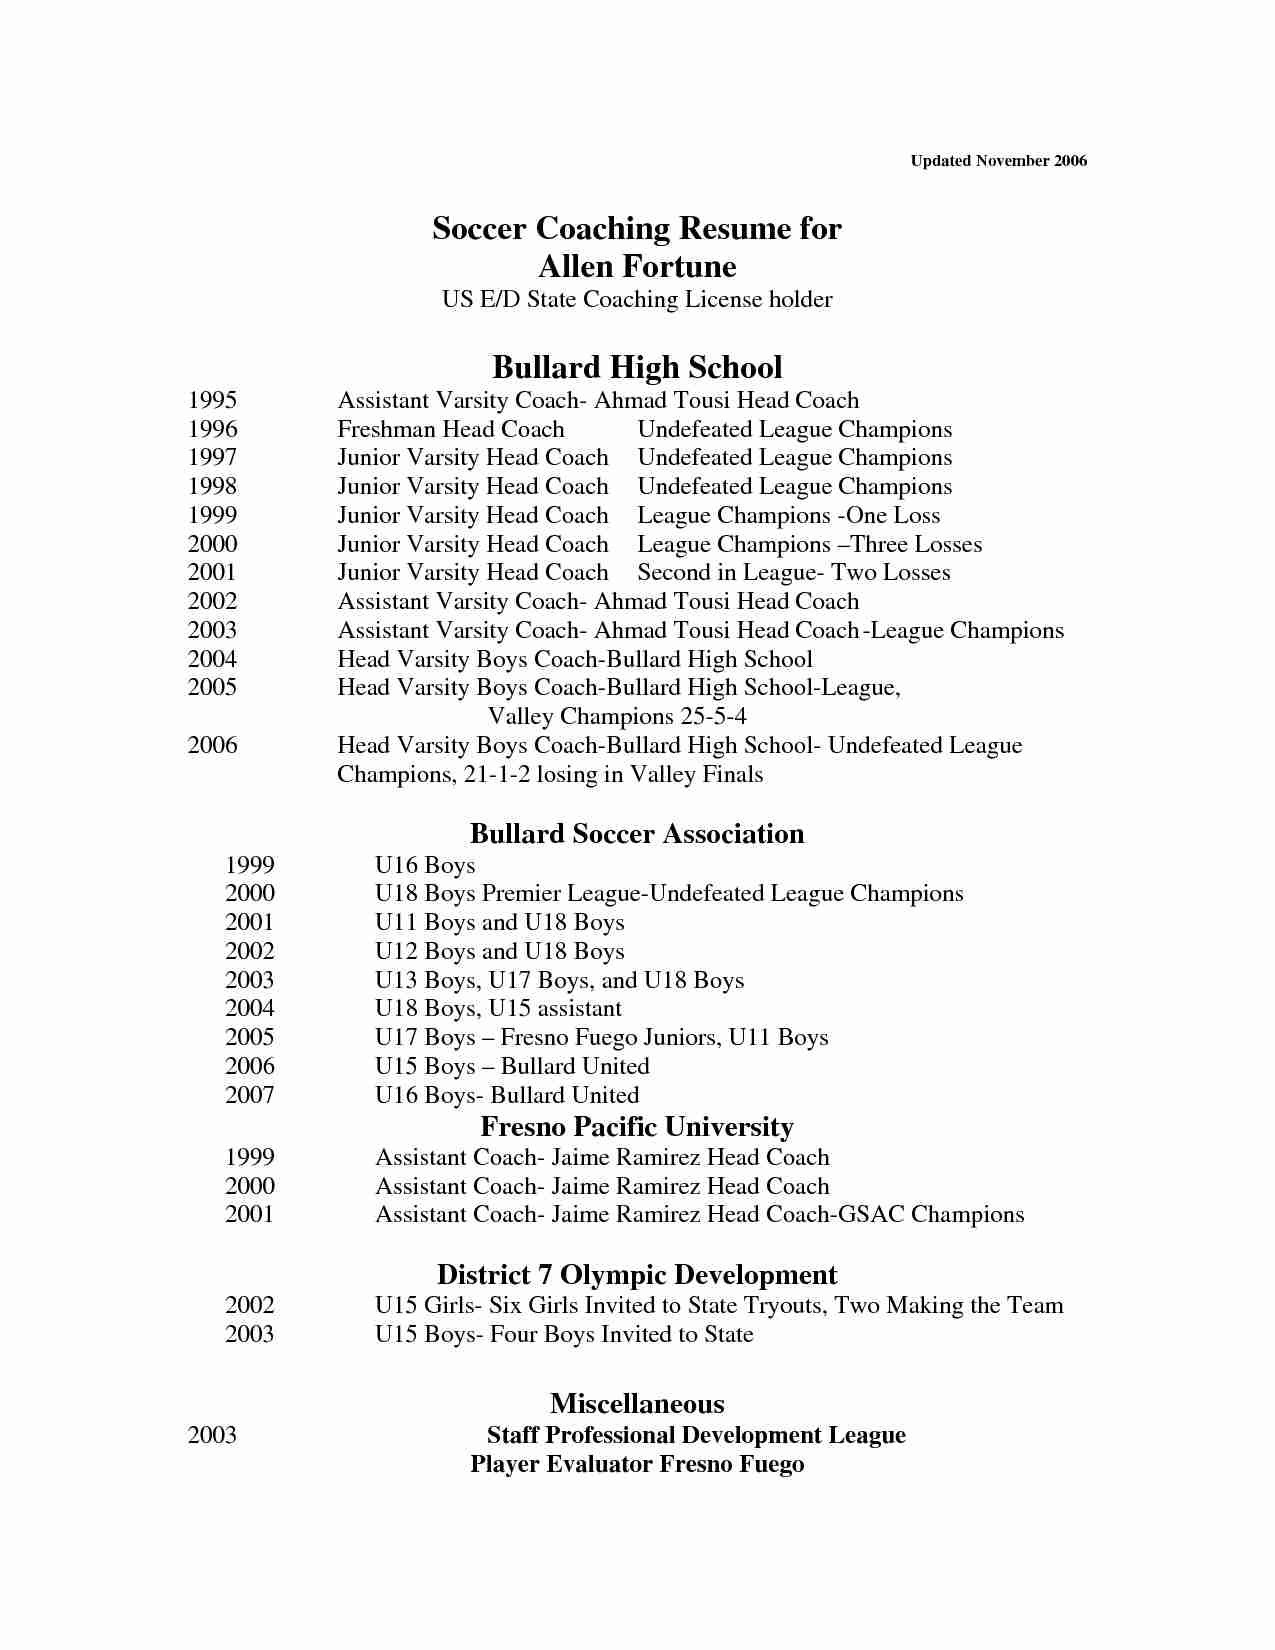 Soccer Coaching Resumes - Basketball Resume Template for Player 2018 Youth Basketball Coach